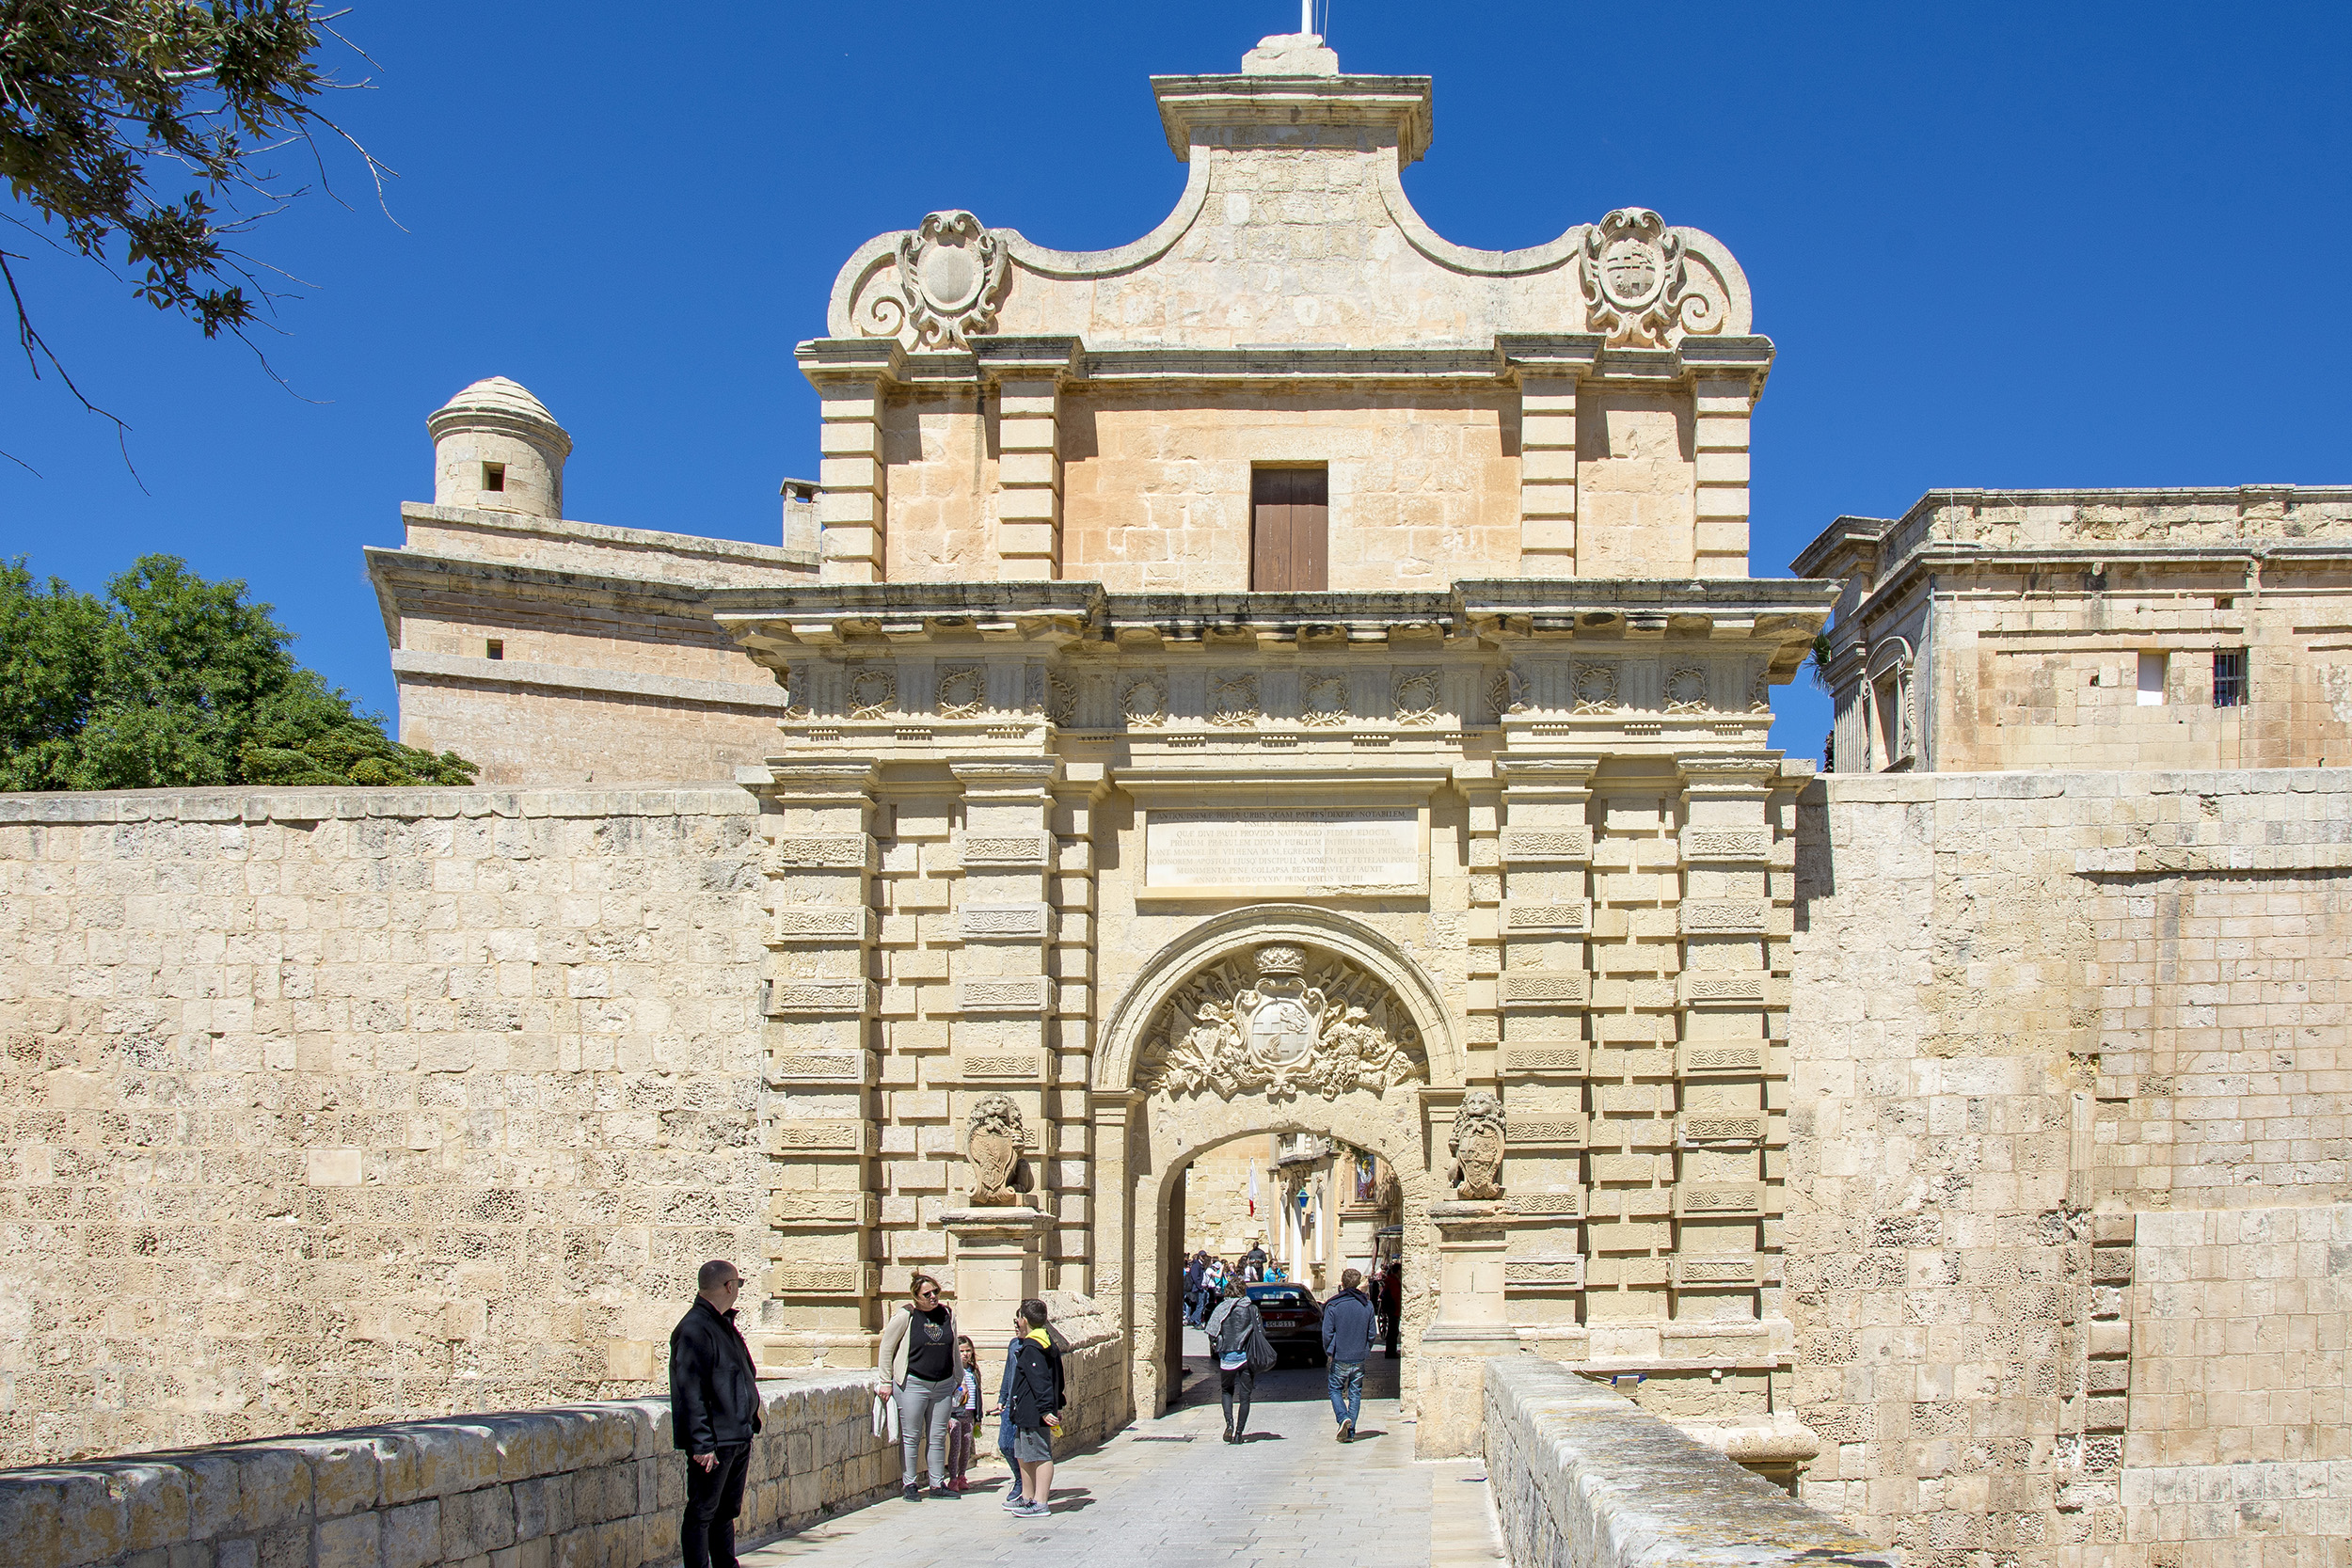 Mdina Stadsport Kings Landing Game of Thrones Malta Malteserorden